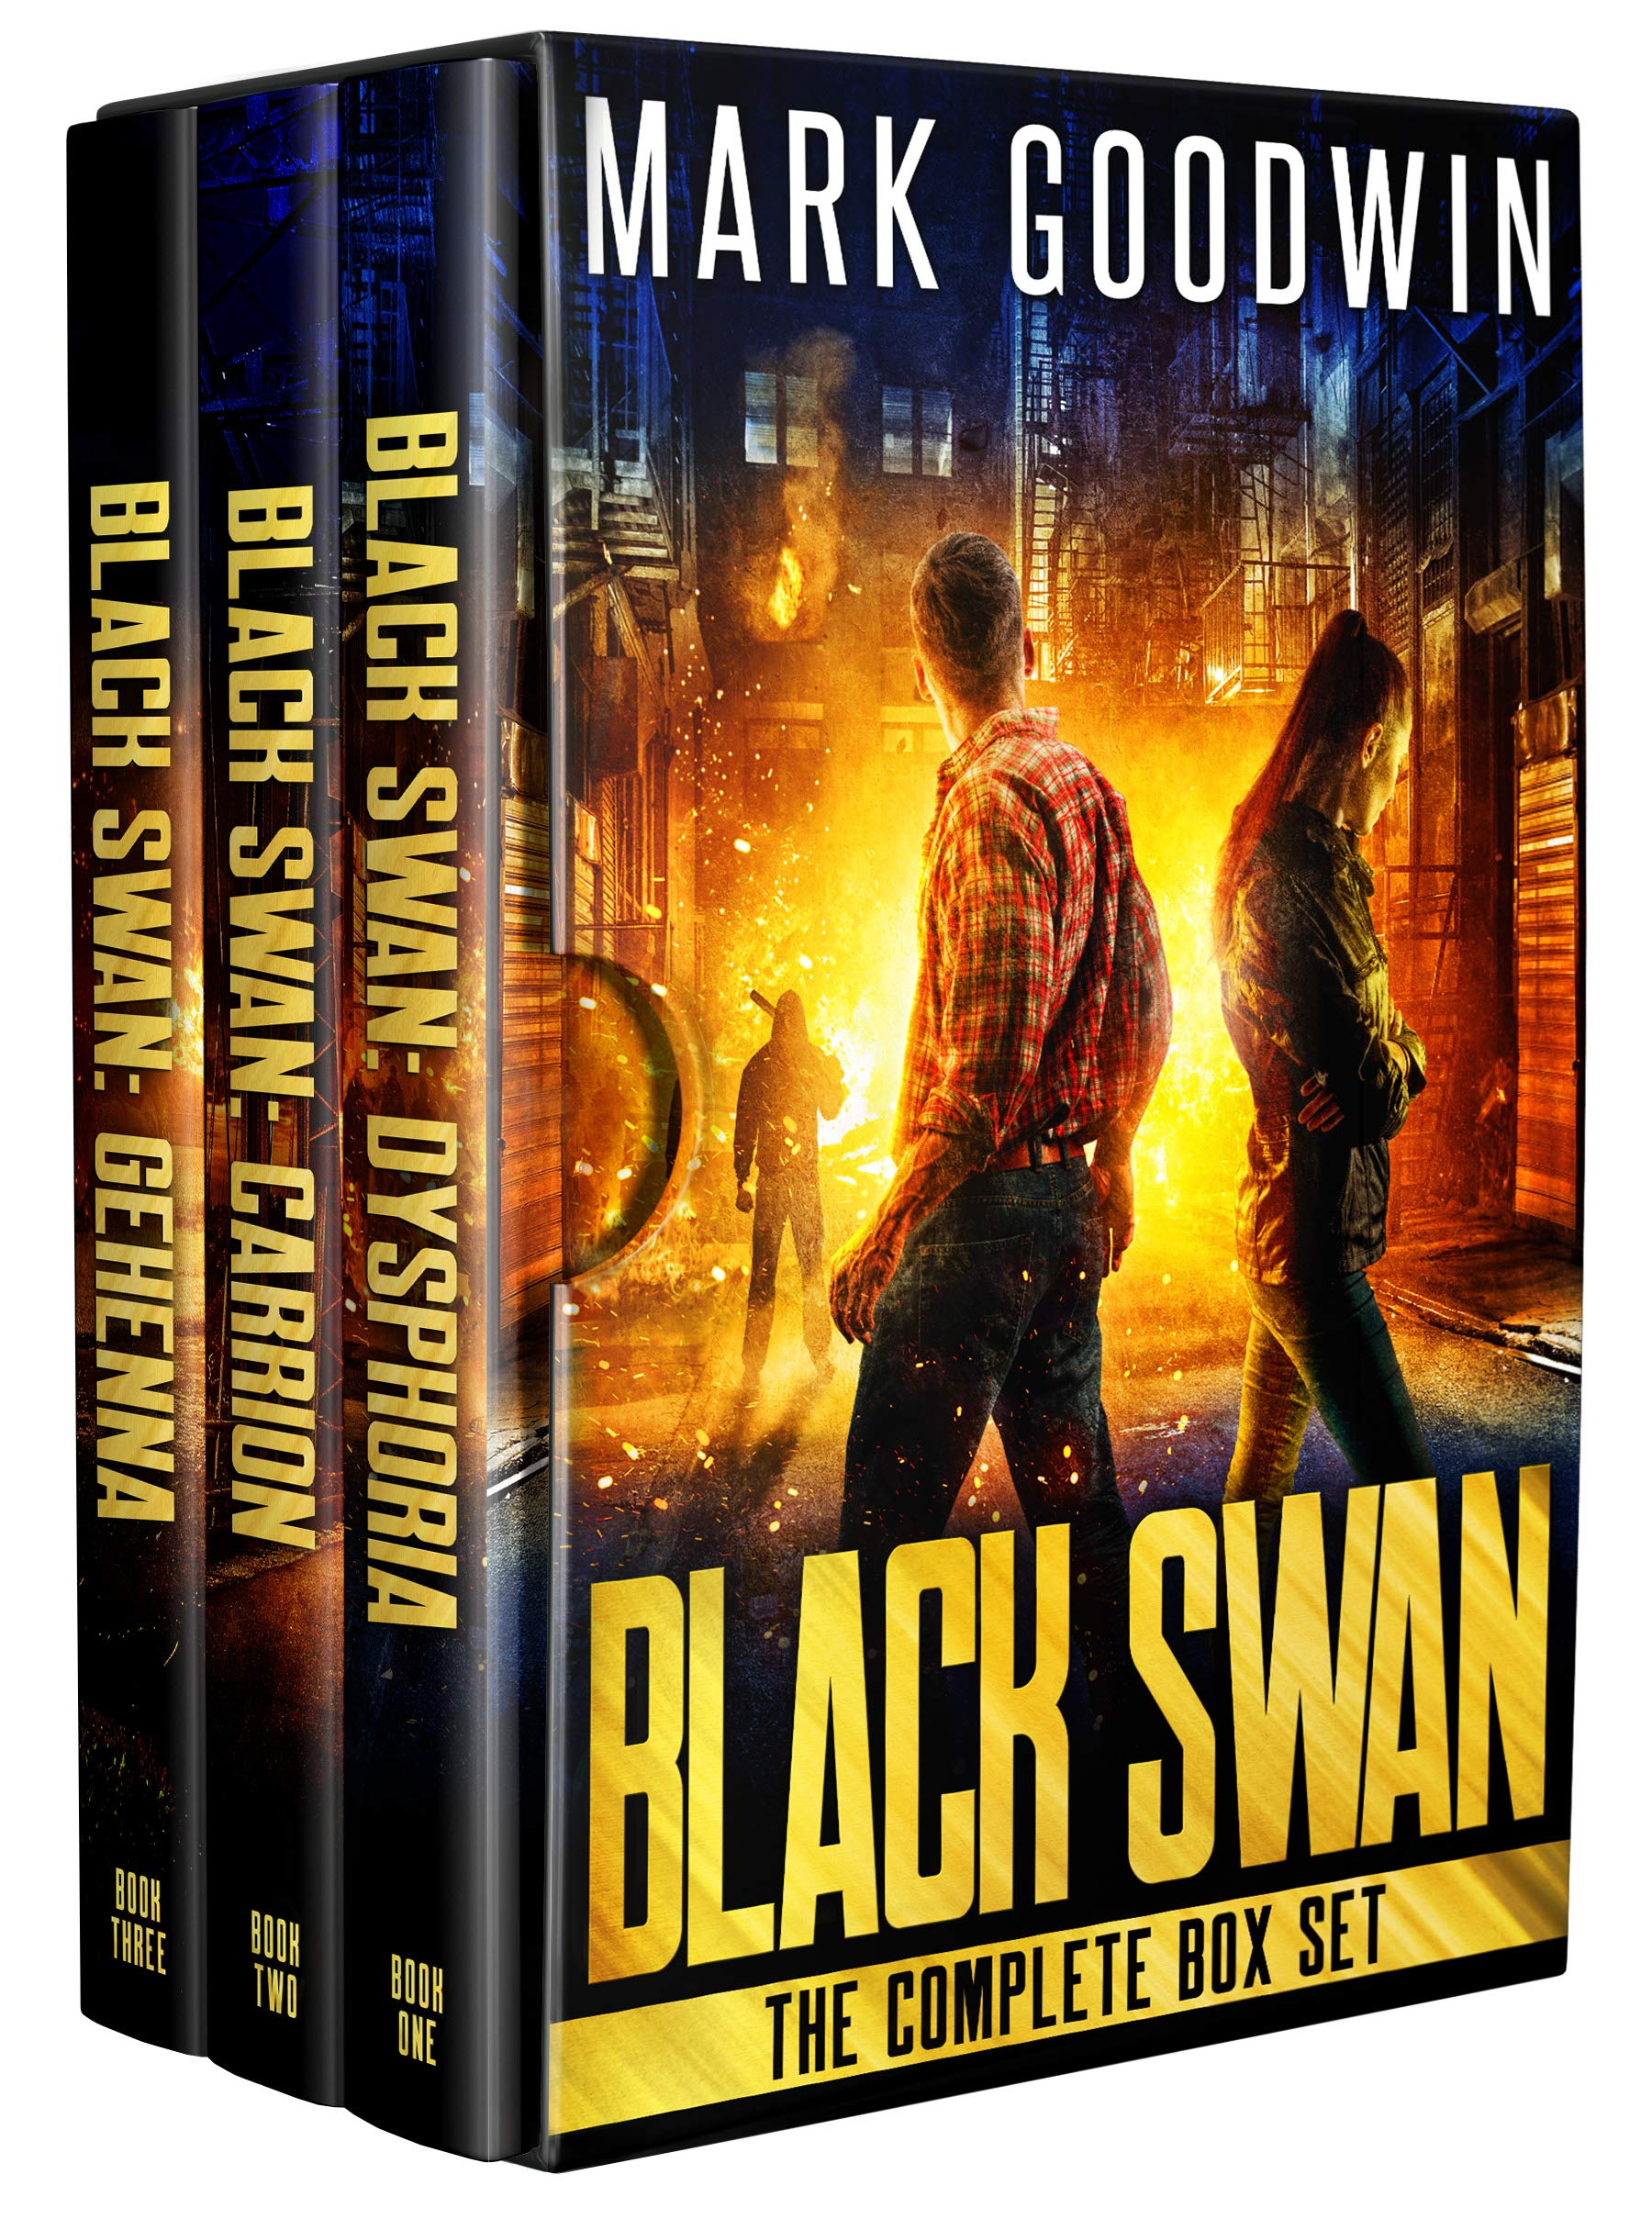 Black Swan The Complete Box Set : A Saga of America's Coming Financial Nightmare